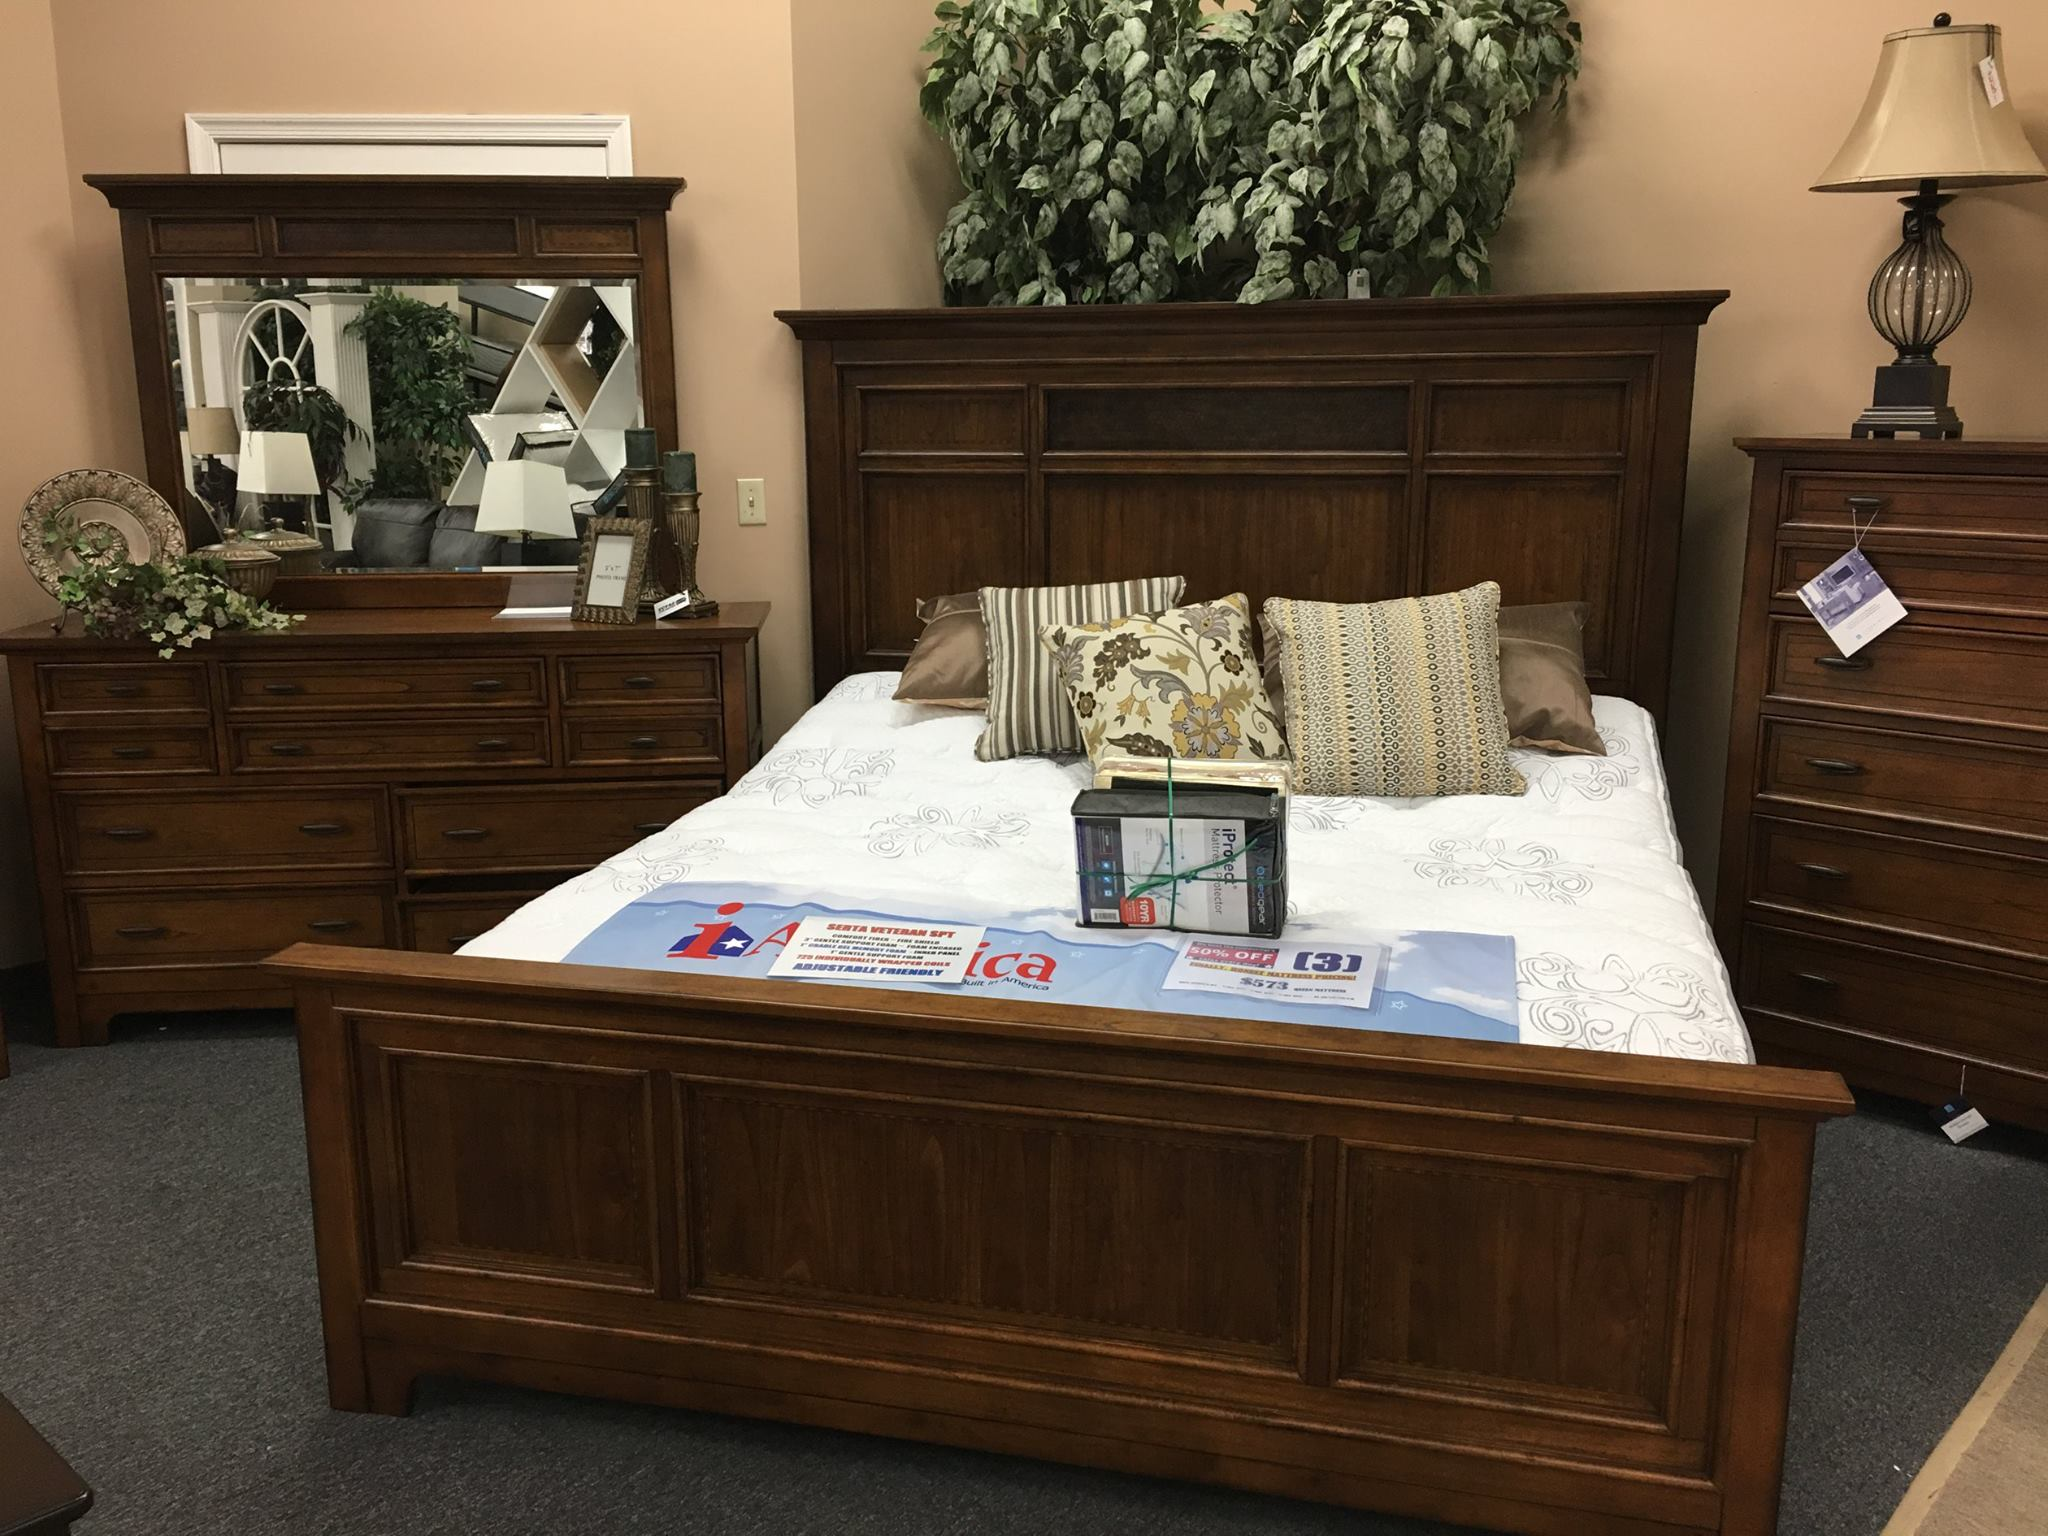 sofas unlimited and more mechanicsburg pa 17050 yp com - Sofas Unlimited